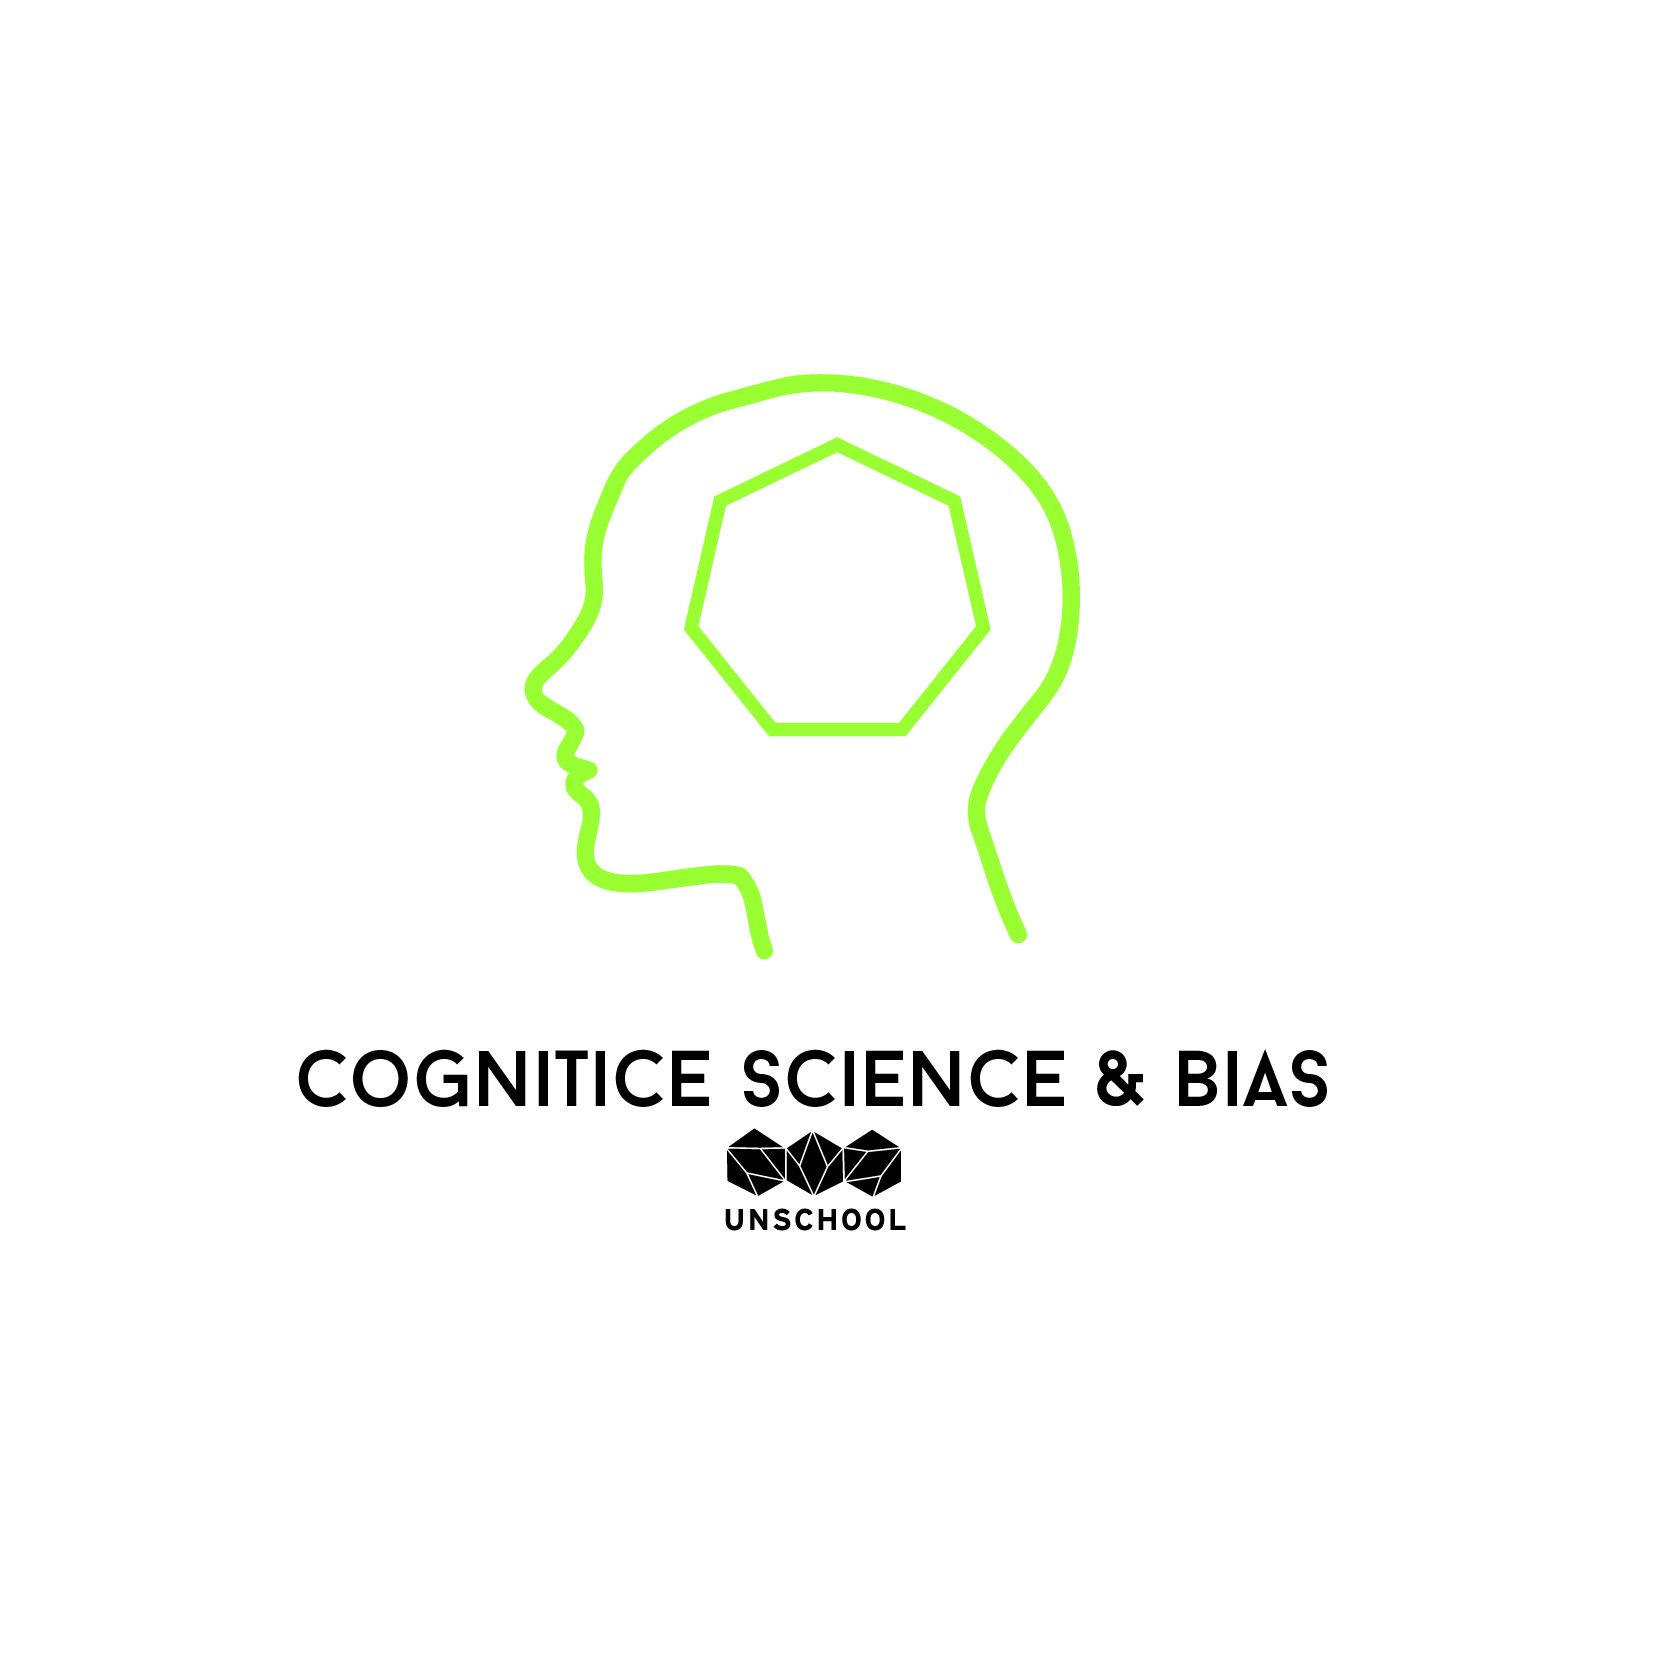 Pin By The Unschool On Cognitive Science Amp Bias